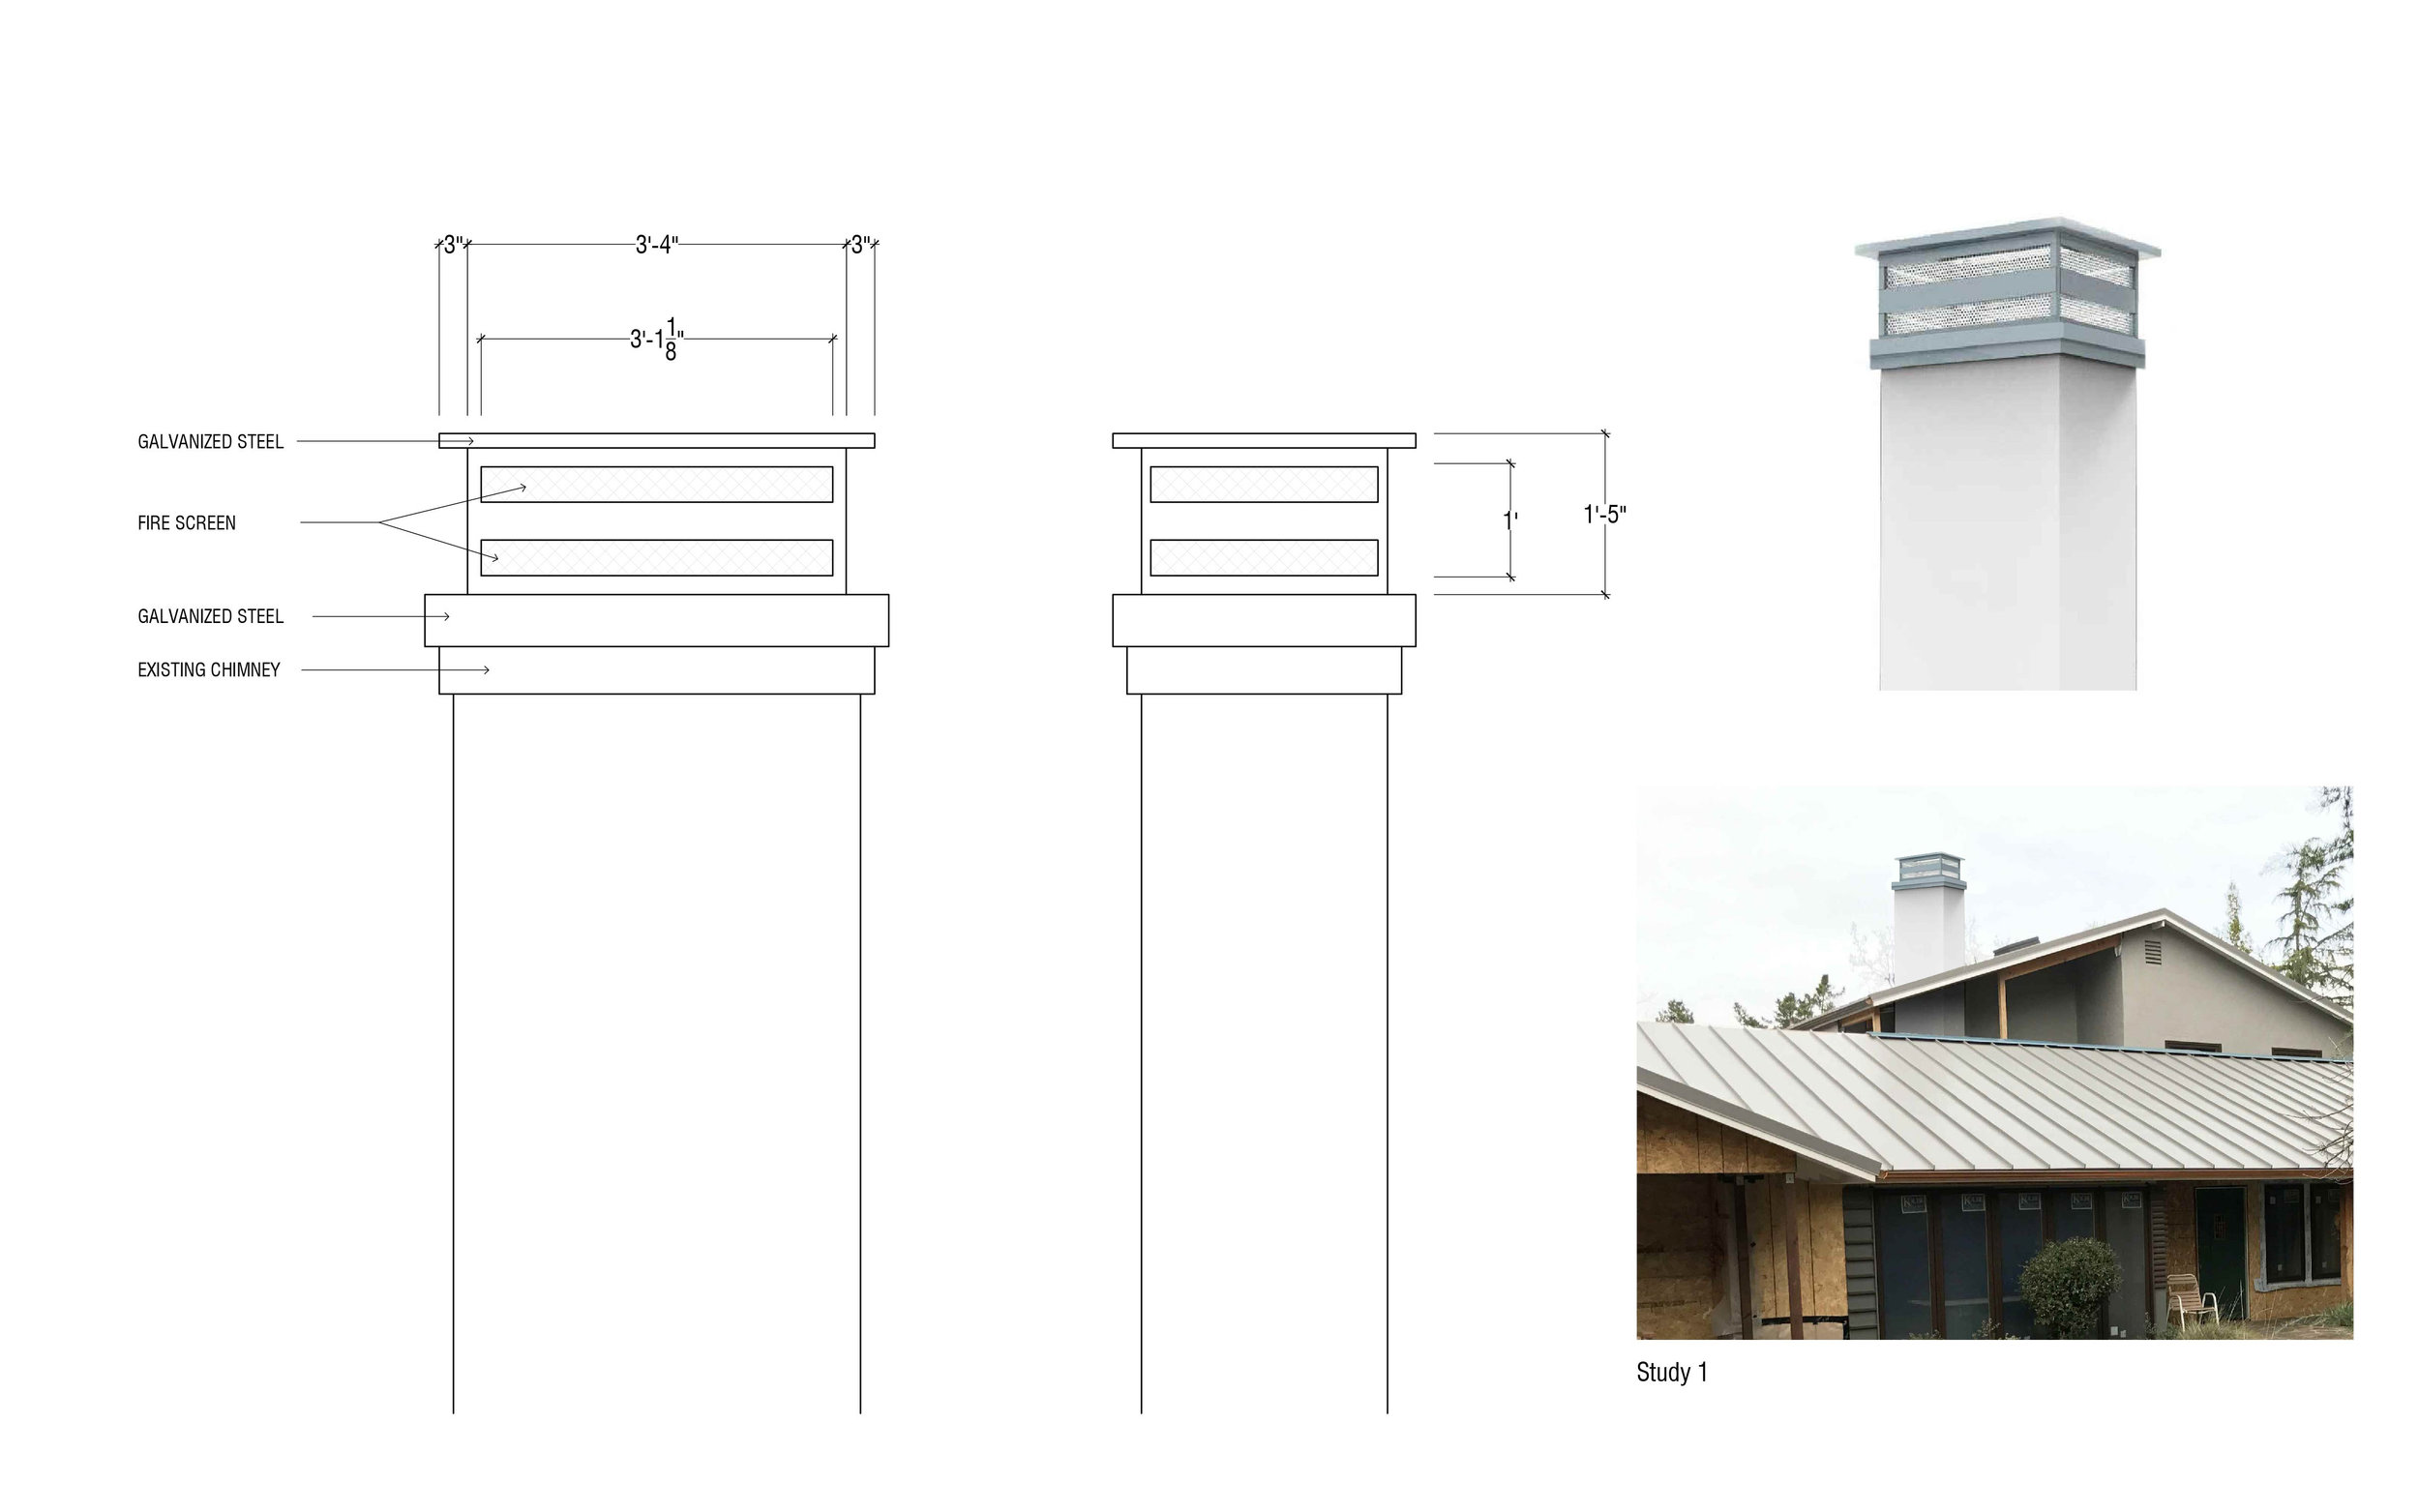 CONSTRUCTION DRAWINGS AND ITERATIONS